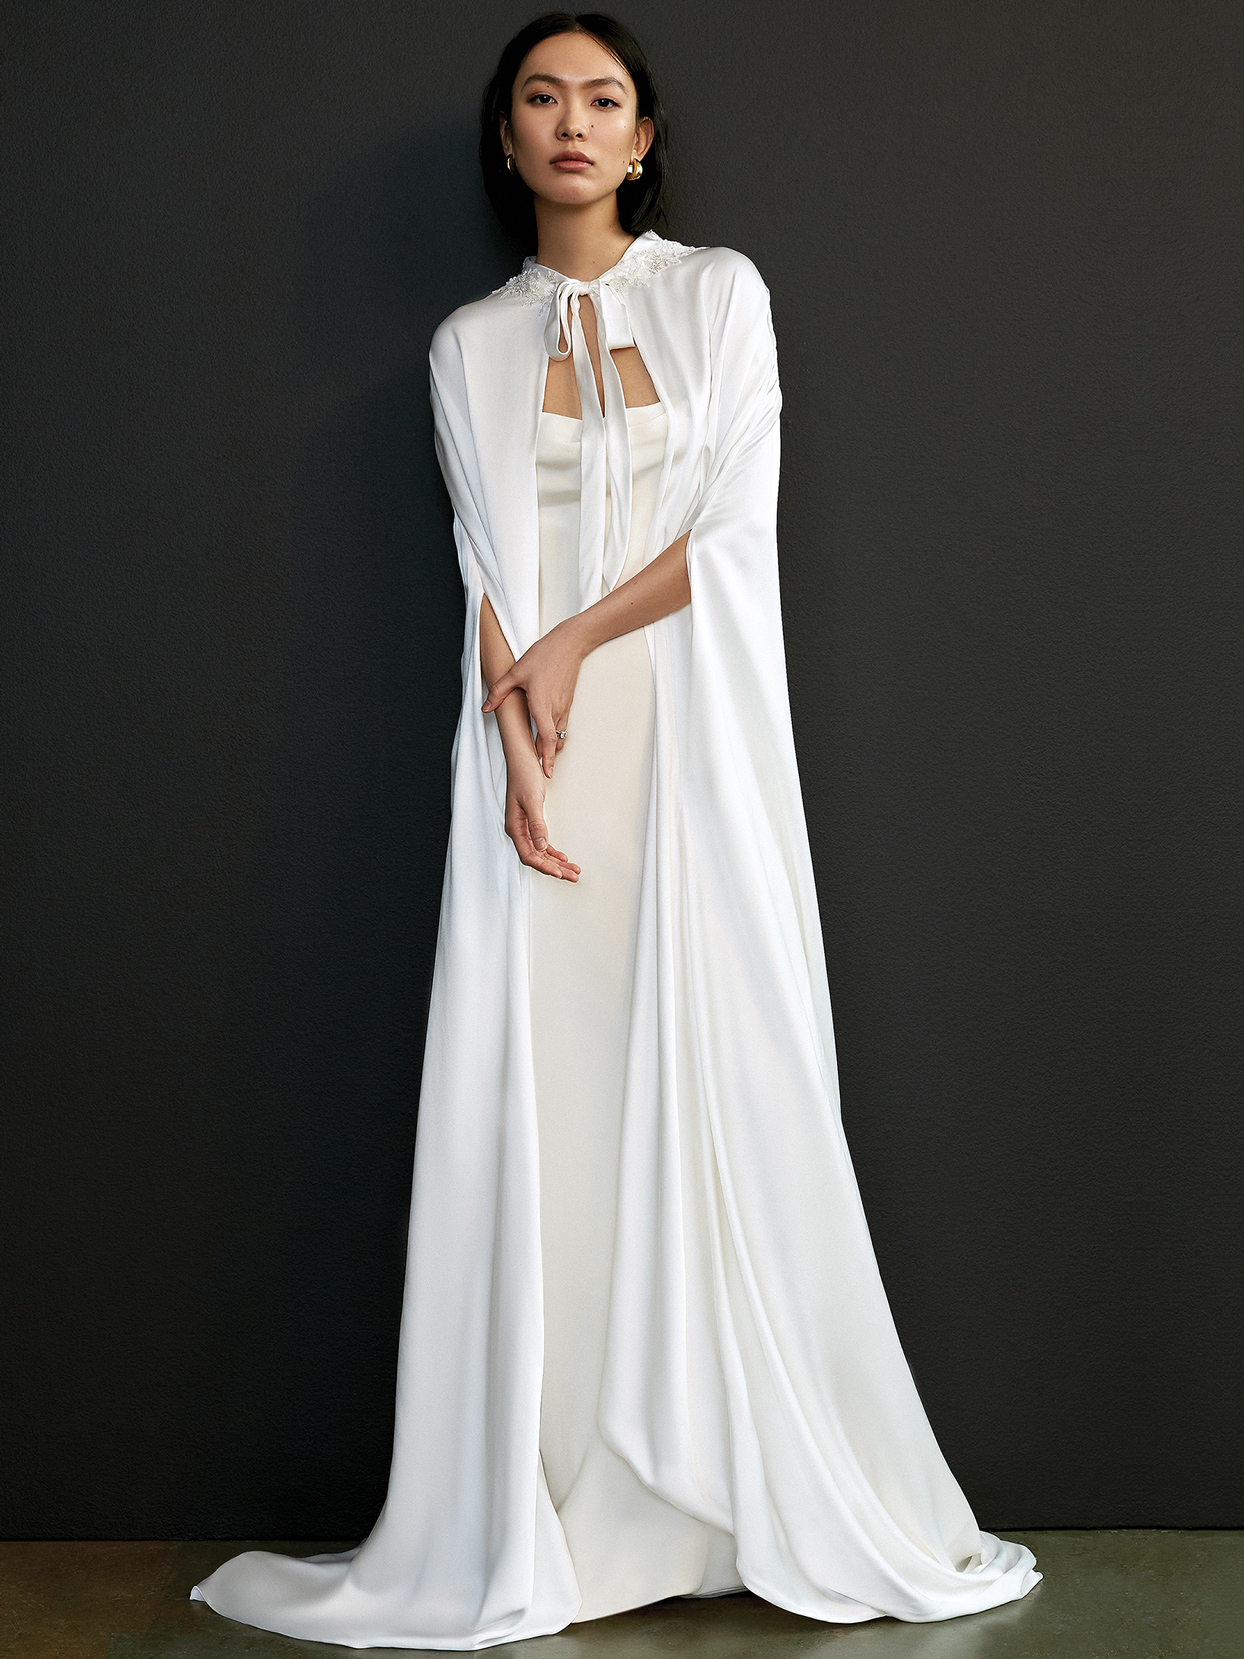 savannah miller long cape a-line wedding dress spring 2021